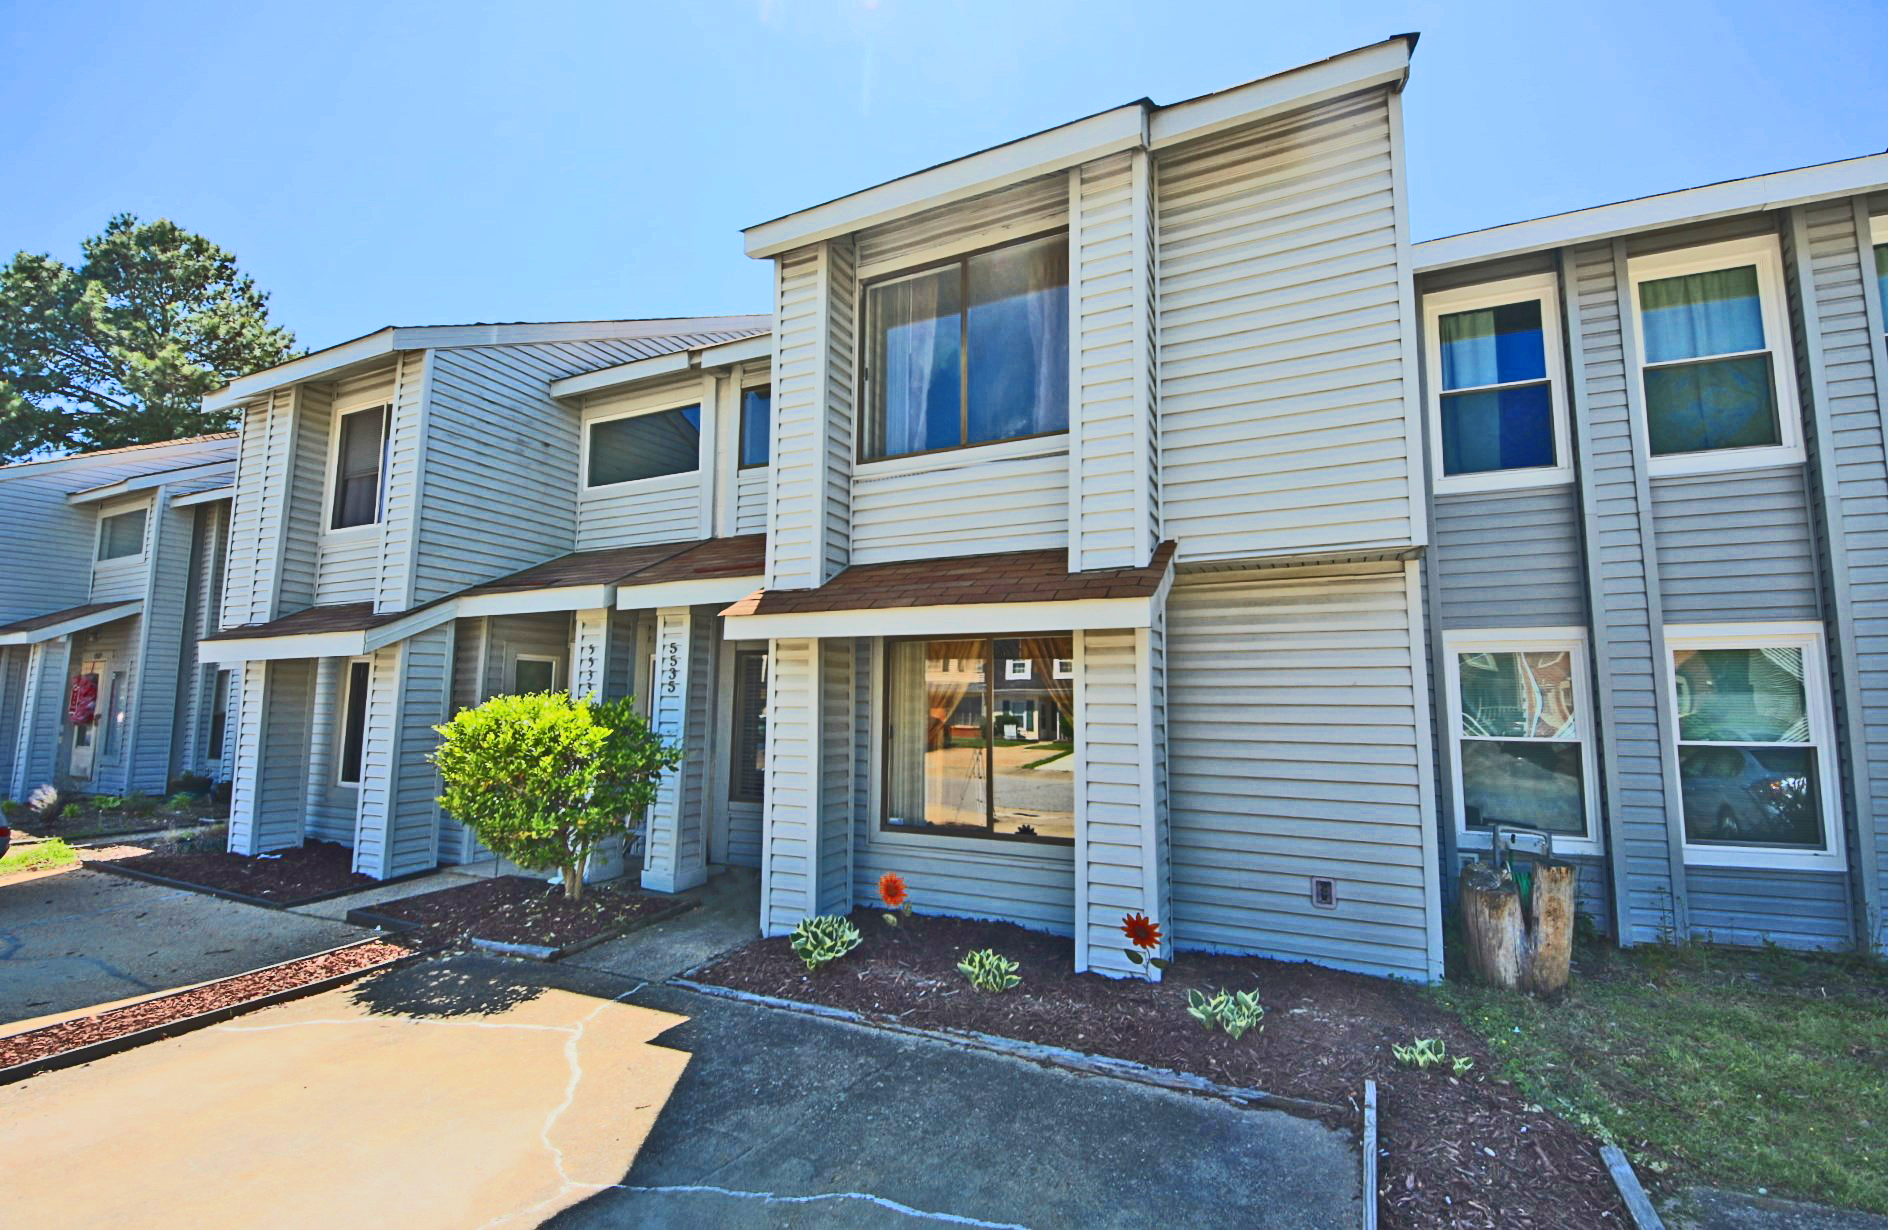 5535 Campus Drive: Sold!